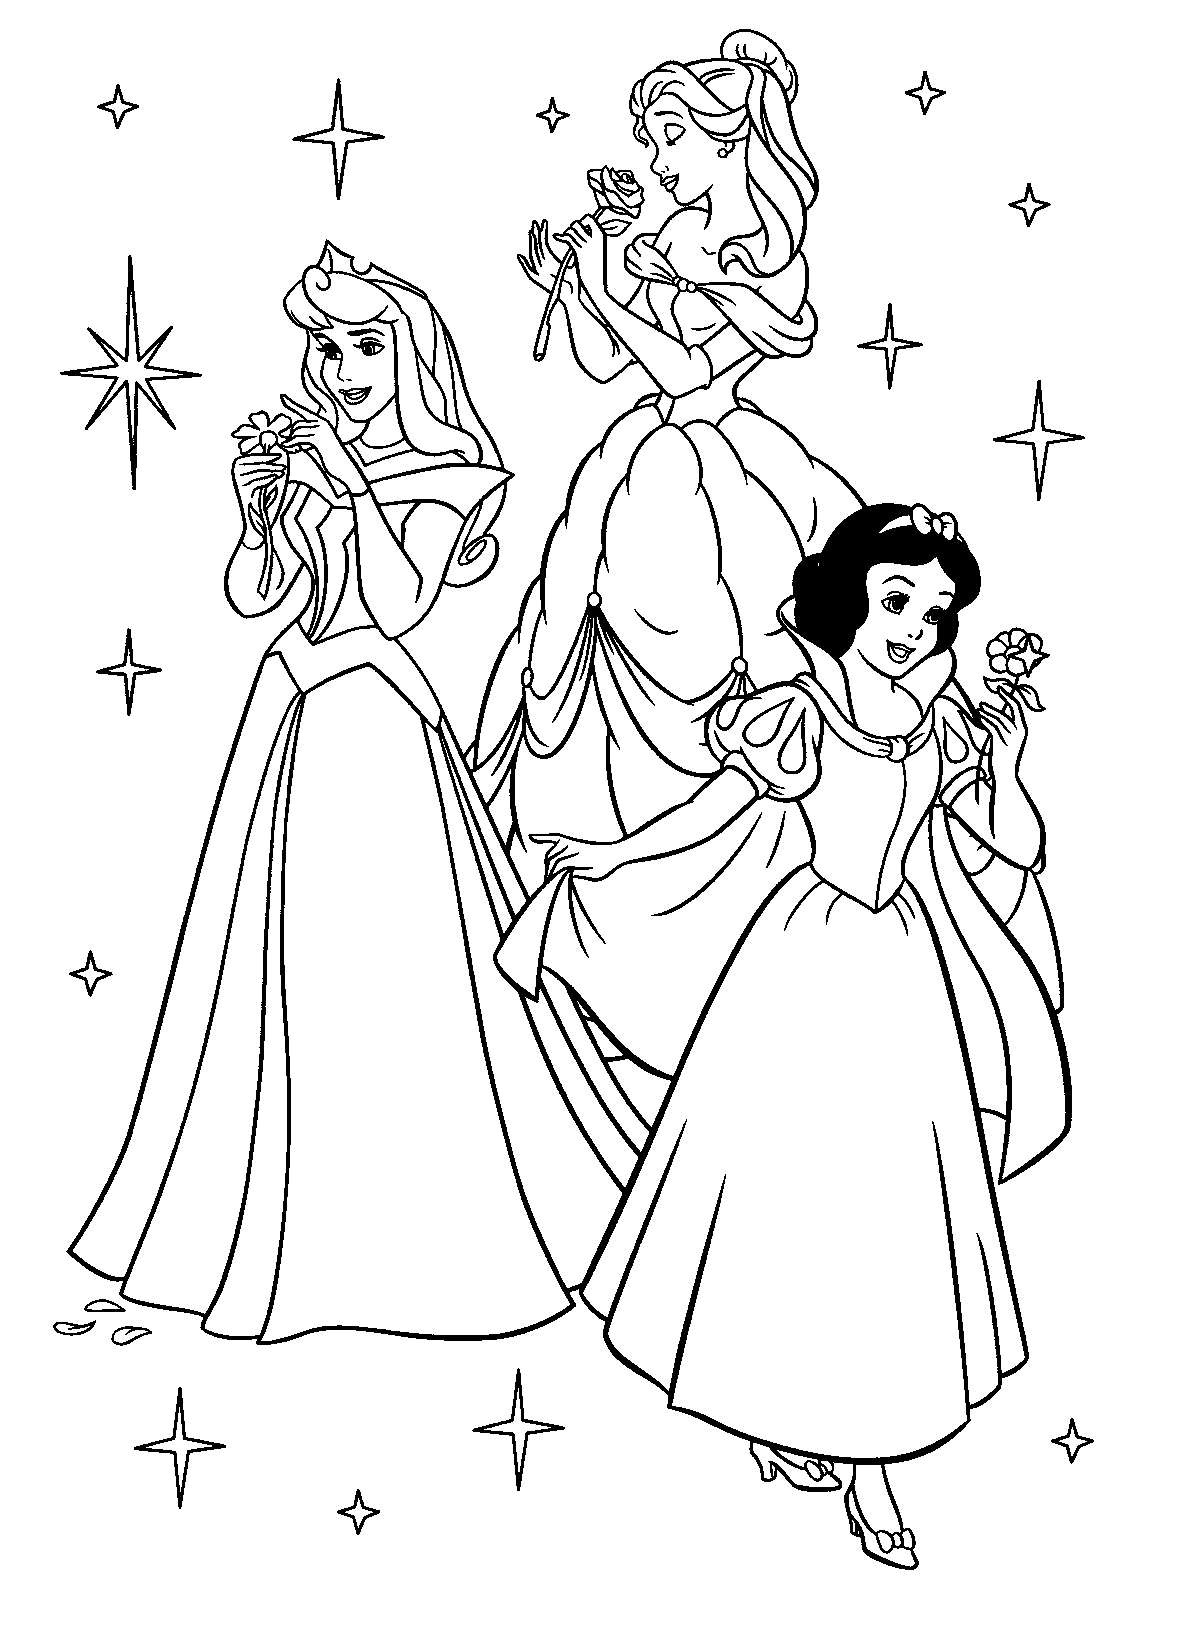 Free Printable Disney Princess Coloring Pages For Kids Princess Coloring Page